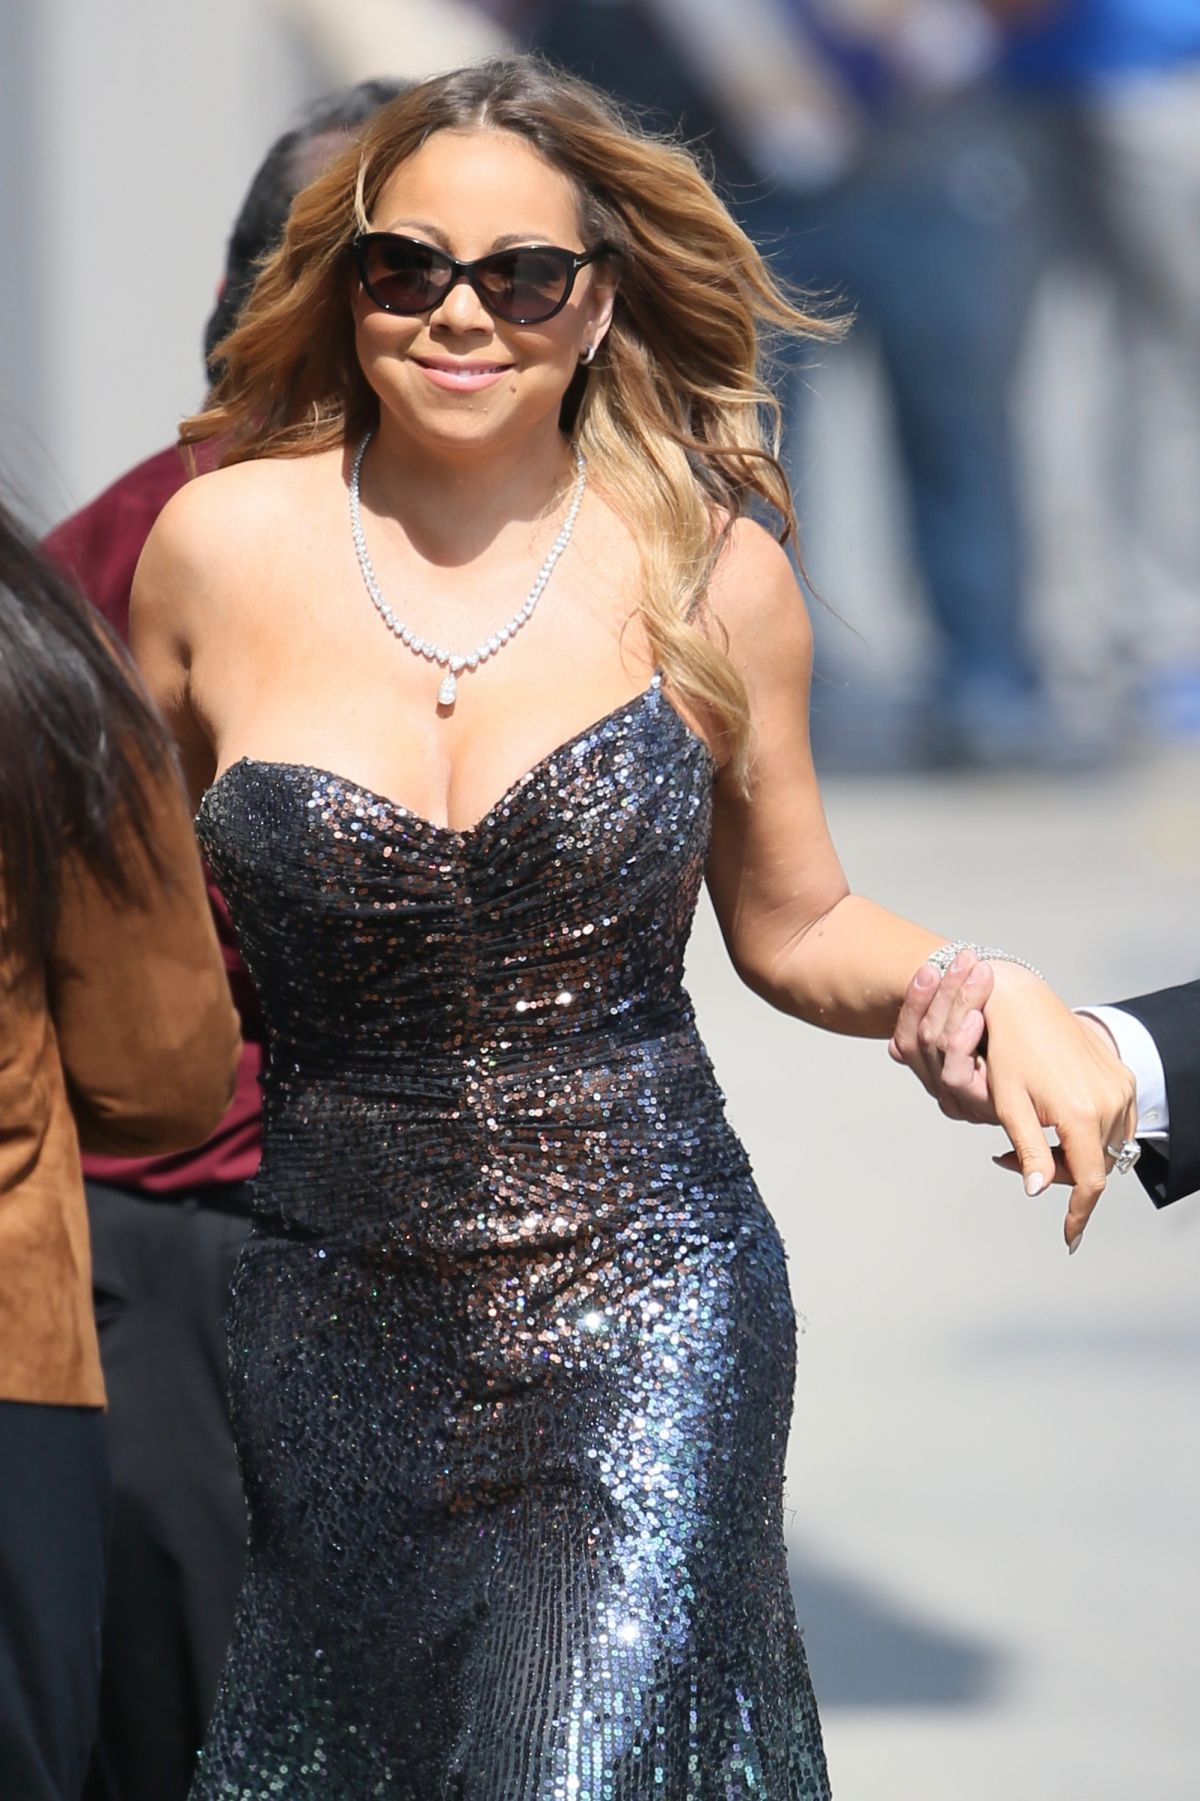 MARIAH CAREY at Jimmy Kimmel Live in Los Angeles 06/01/2016 ...